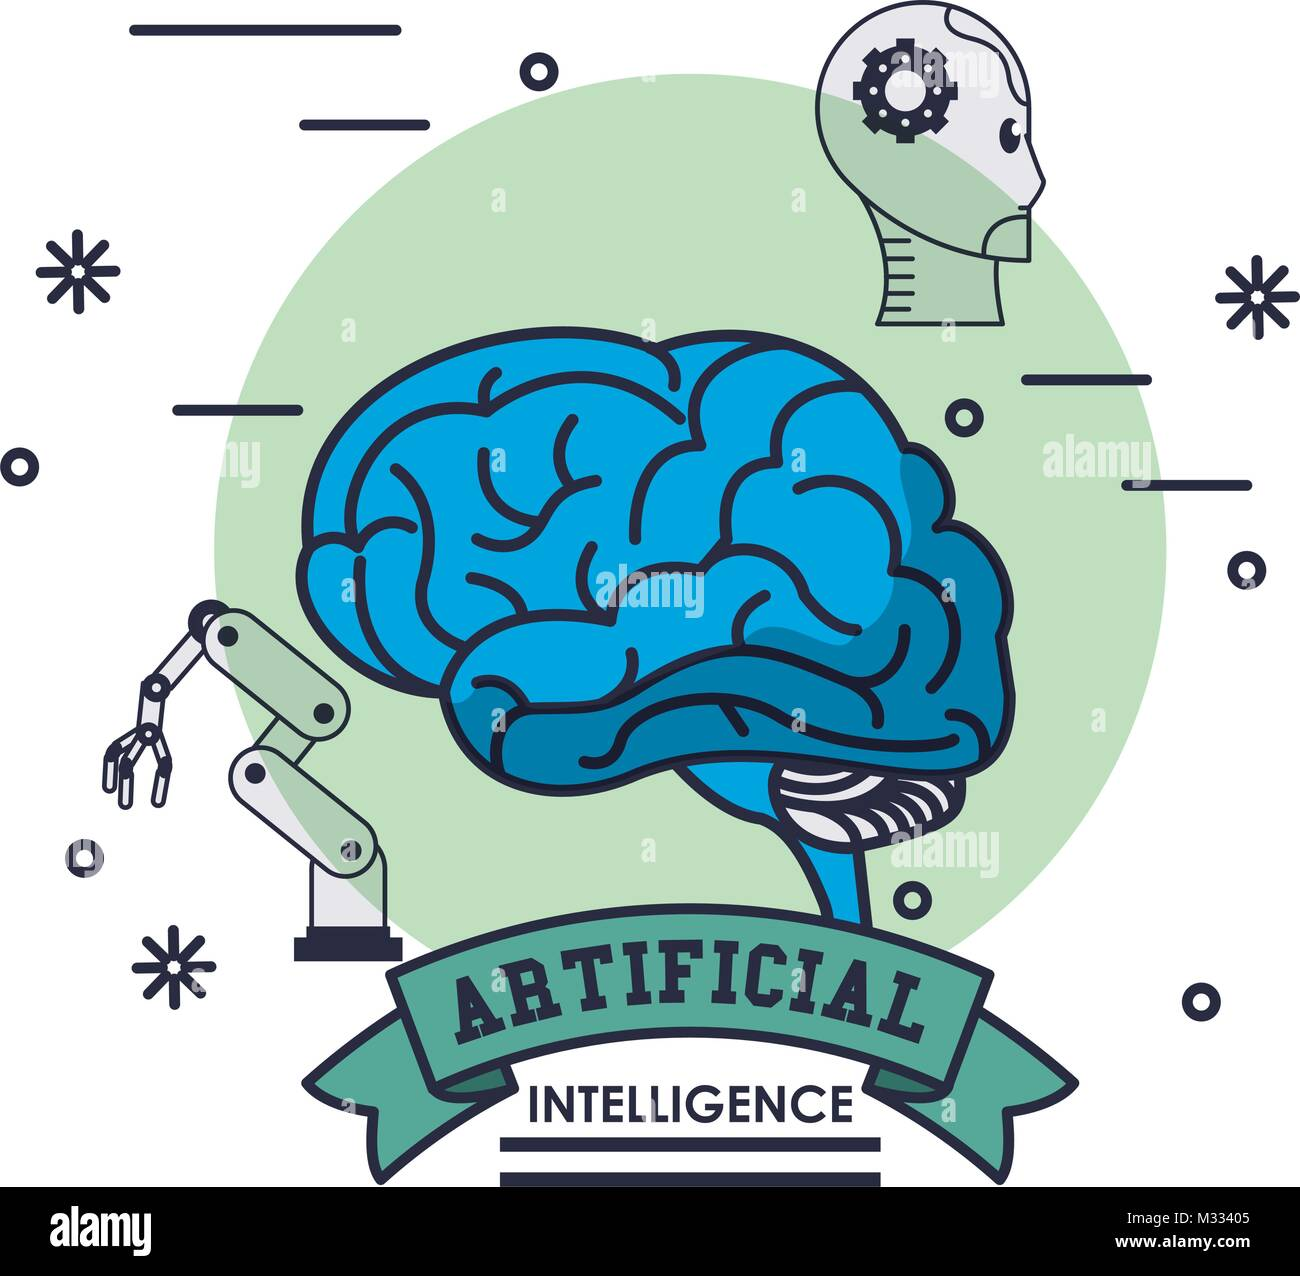 Artificial intelligence technology Stock Vector